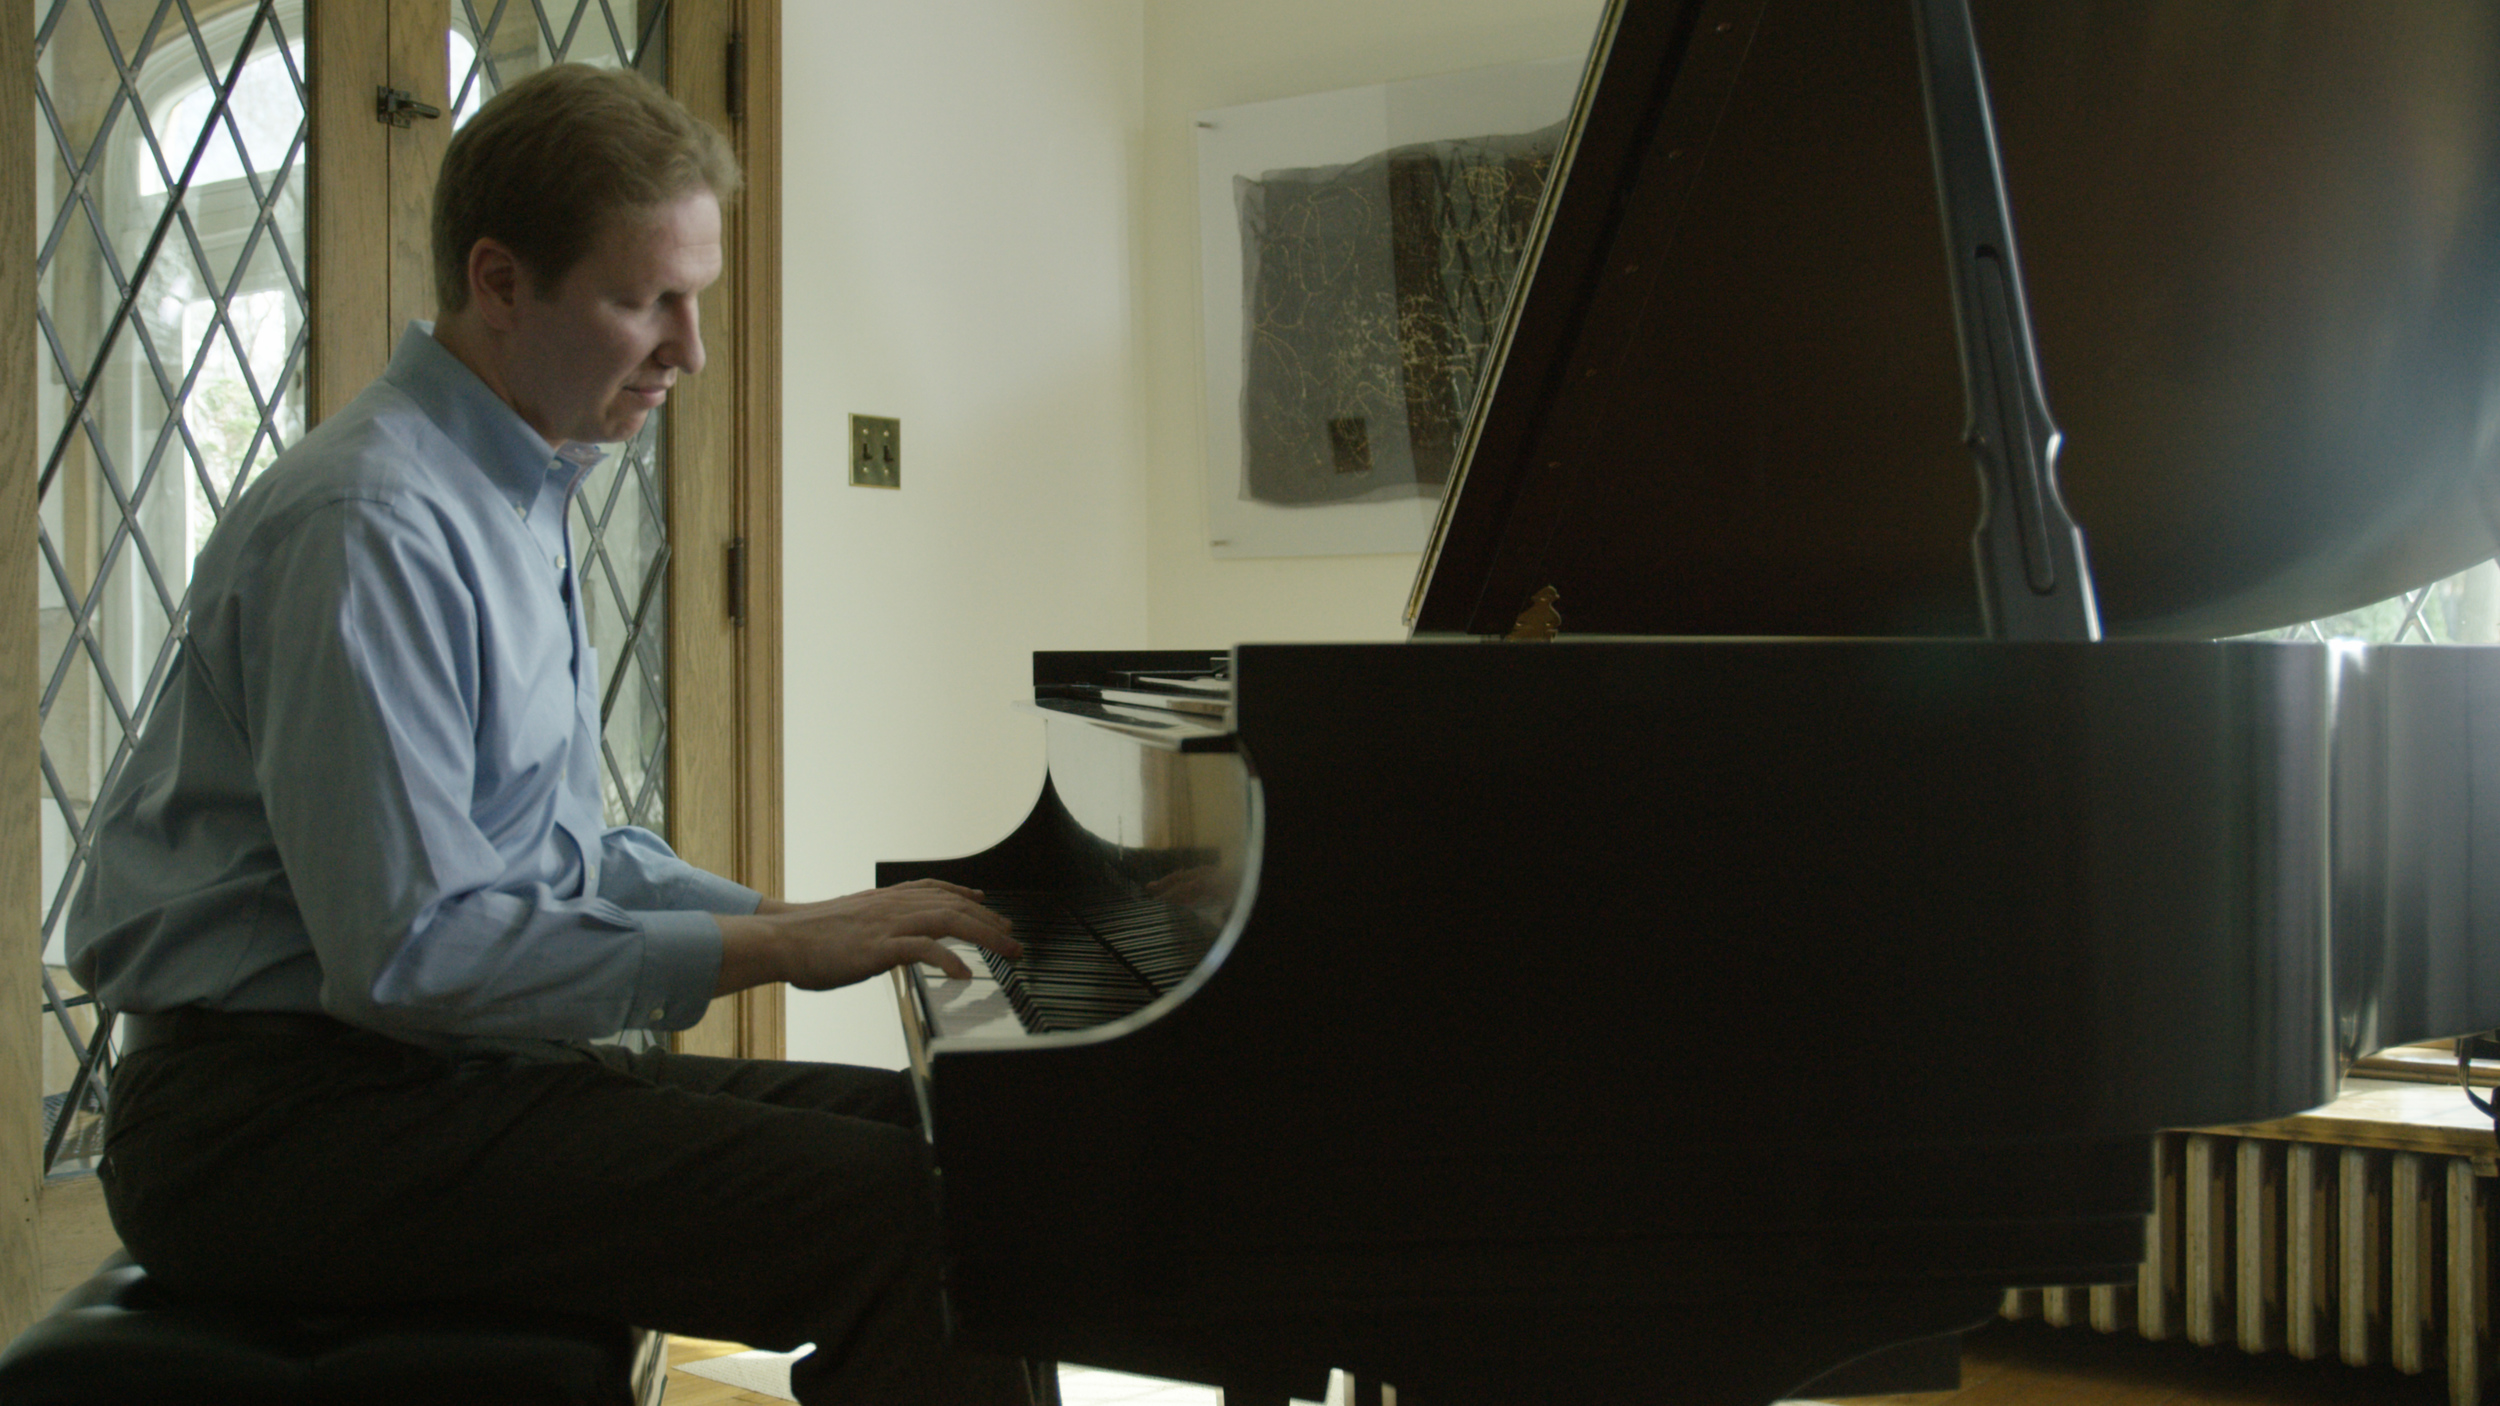 Pierre van der Westhuizen - Pianist and President of the Cleveland International Piano Competition